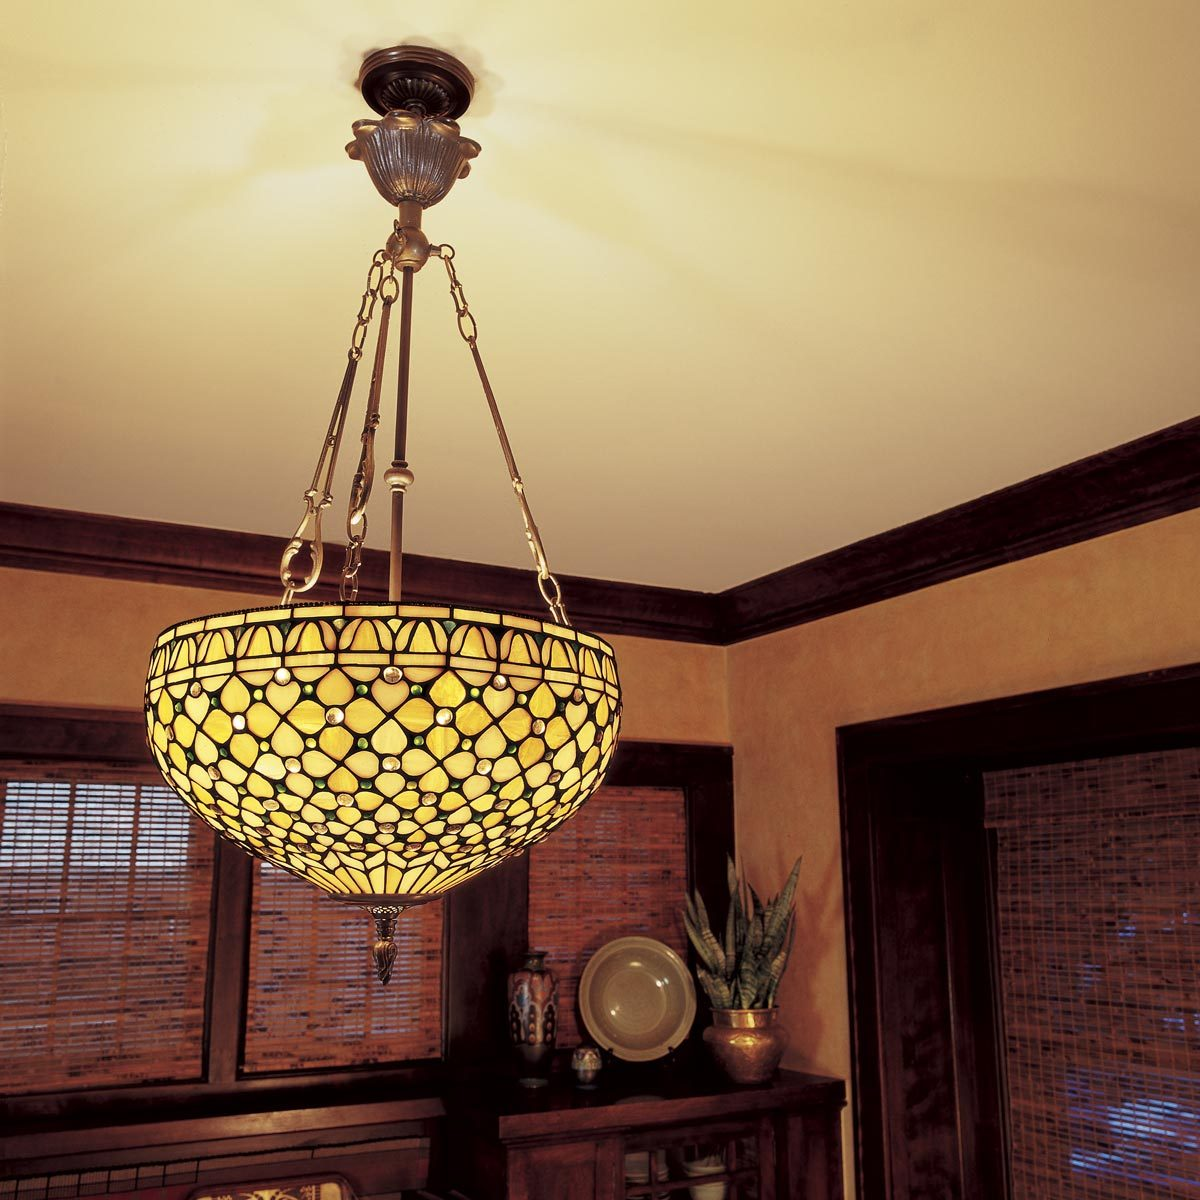 hight resolution of how to hang a ceiling light fixture family handyman wiring diagram further wiring chandelier light kits on fuse holder